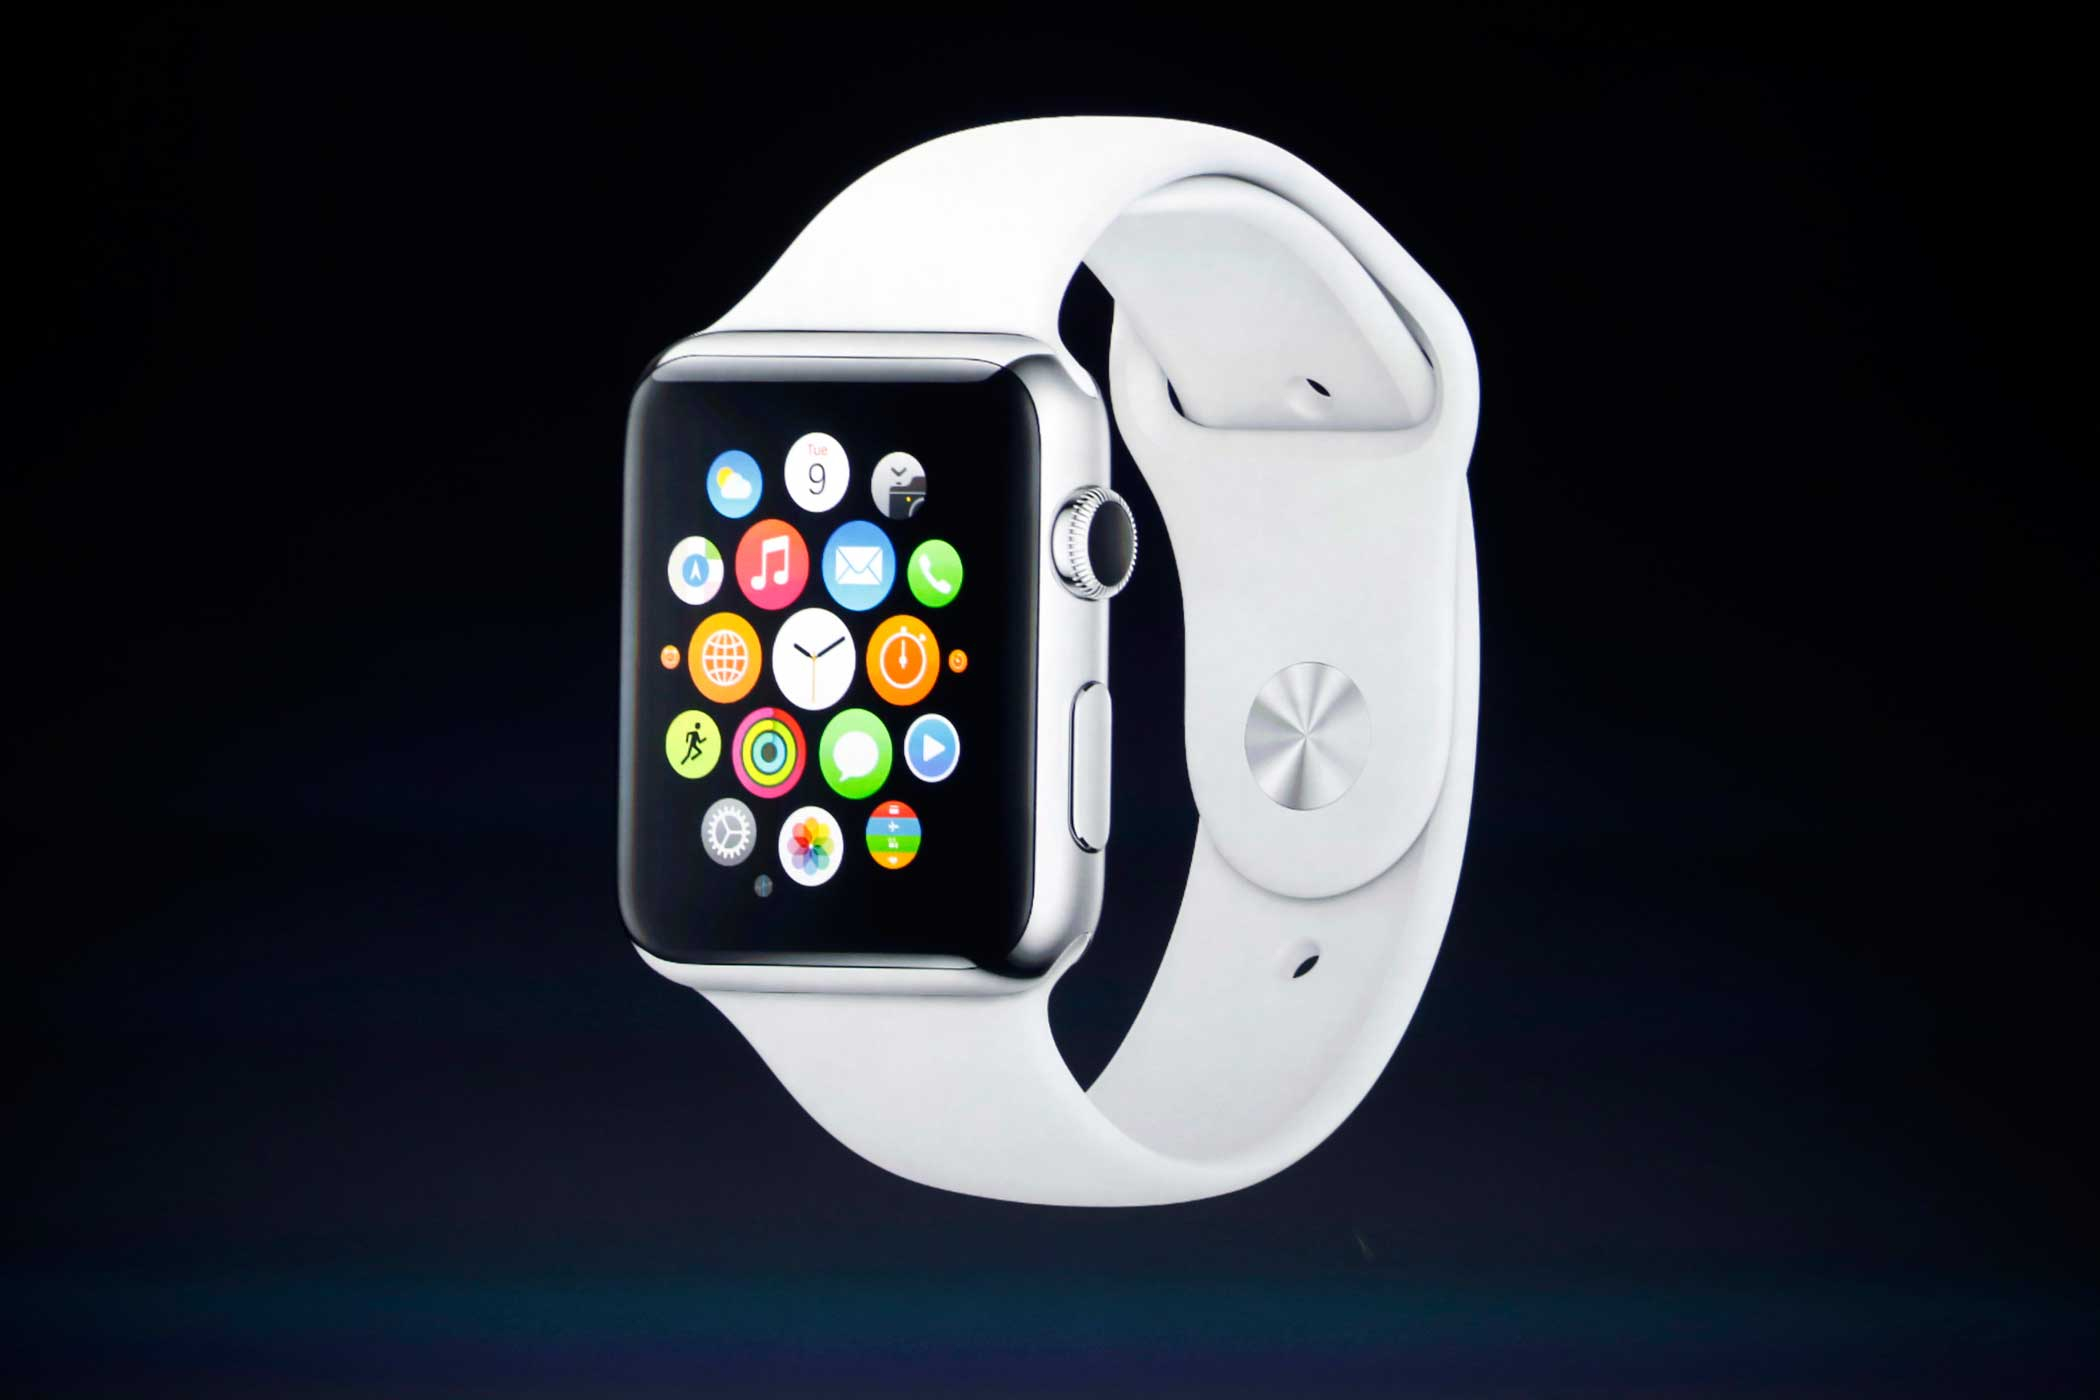 The Apple Watch is the company's' first entirely new product category since the original iPad. It's a huge gamble for Apple and a test of the still-nascent wearable market.